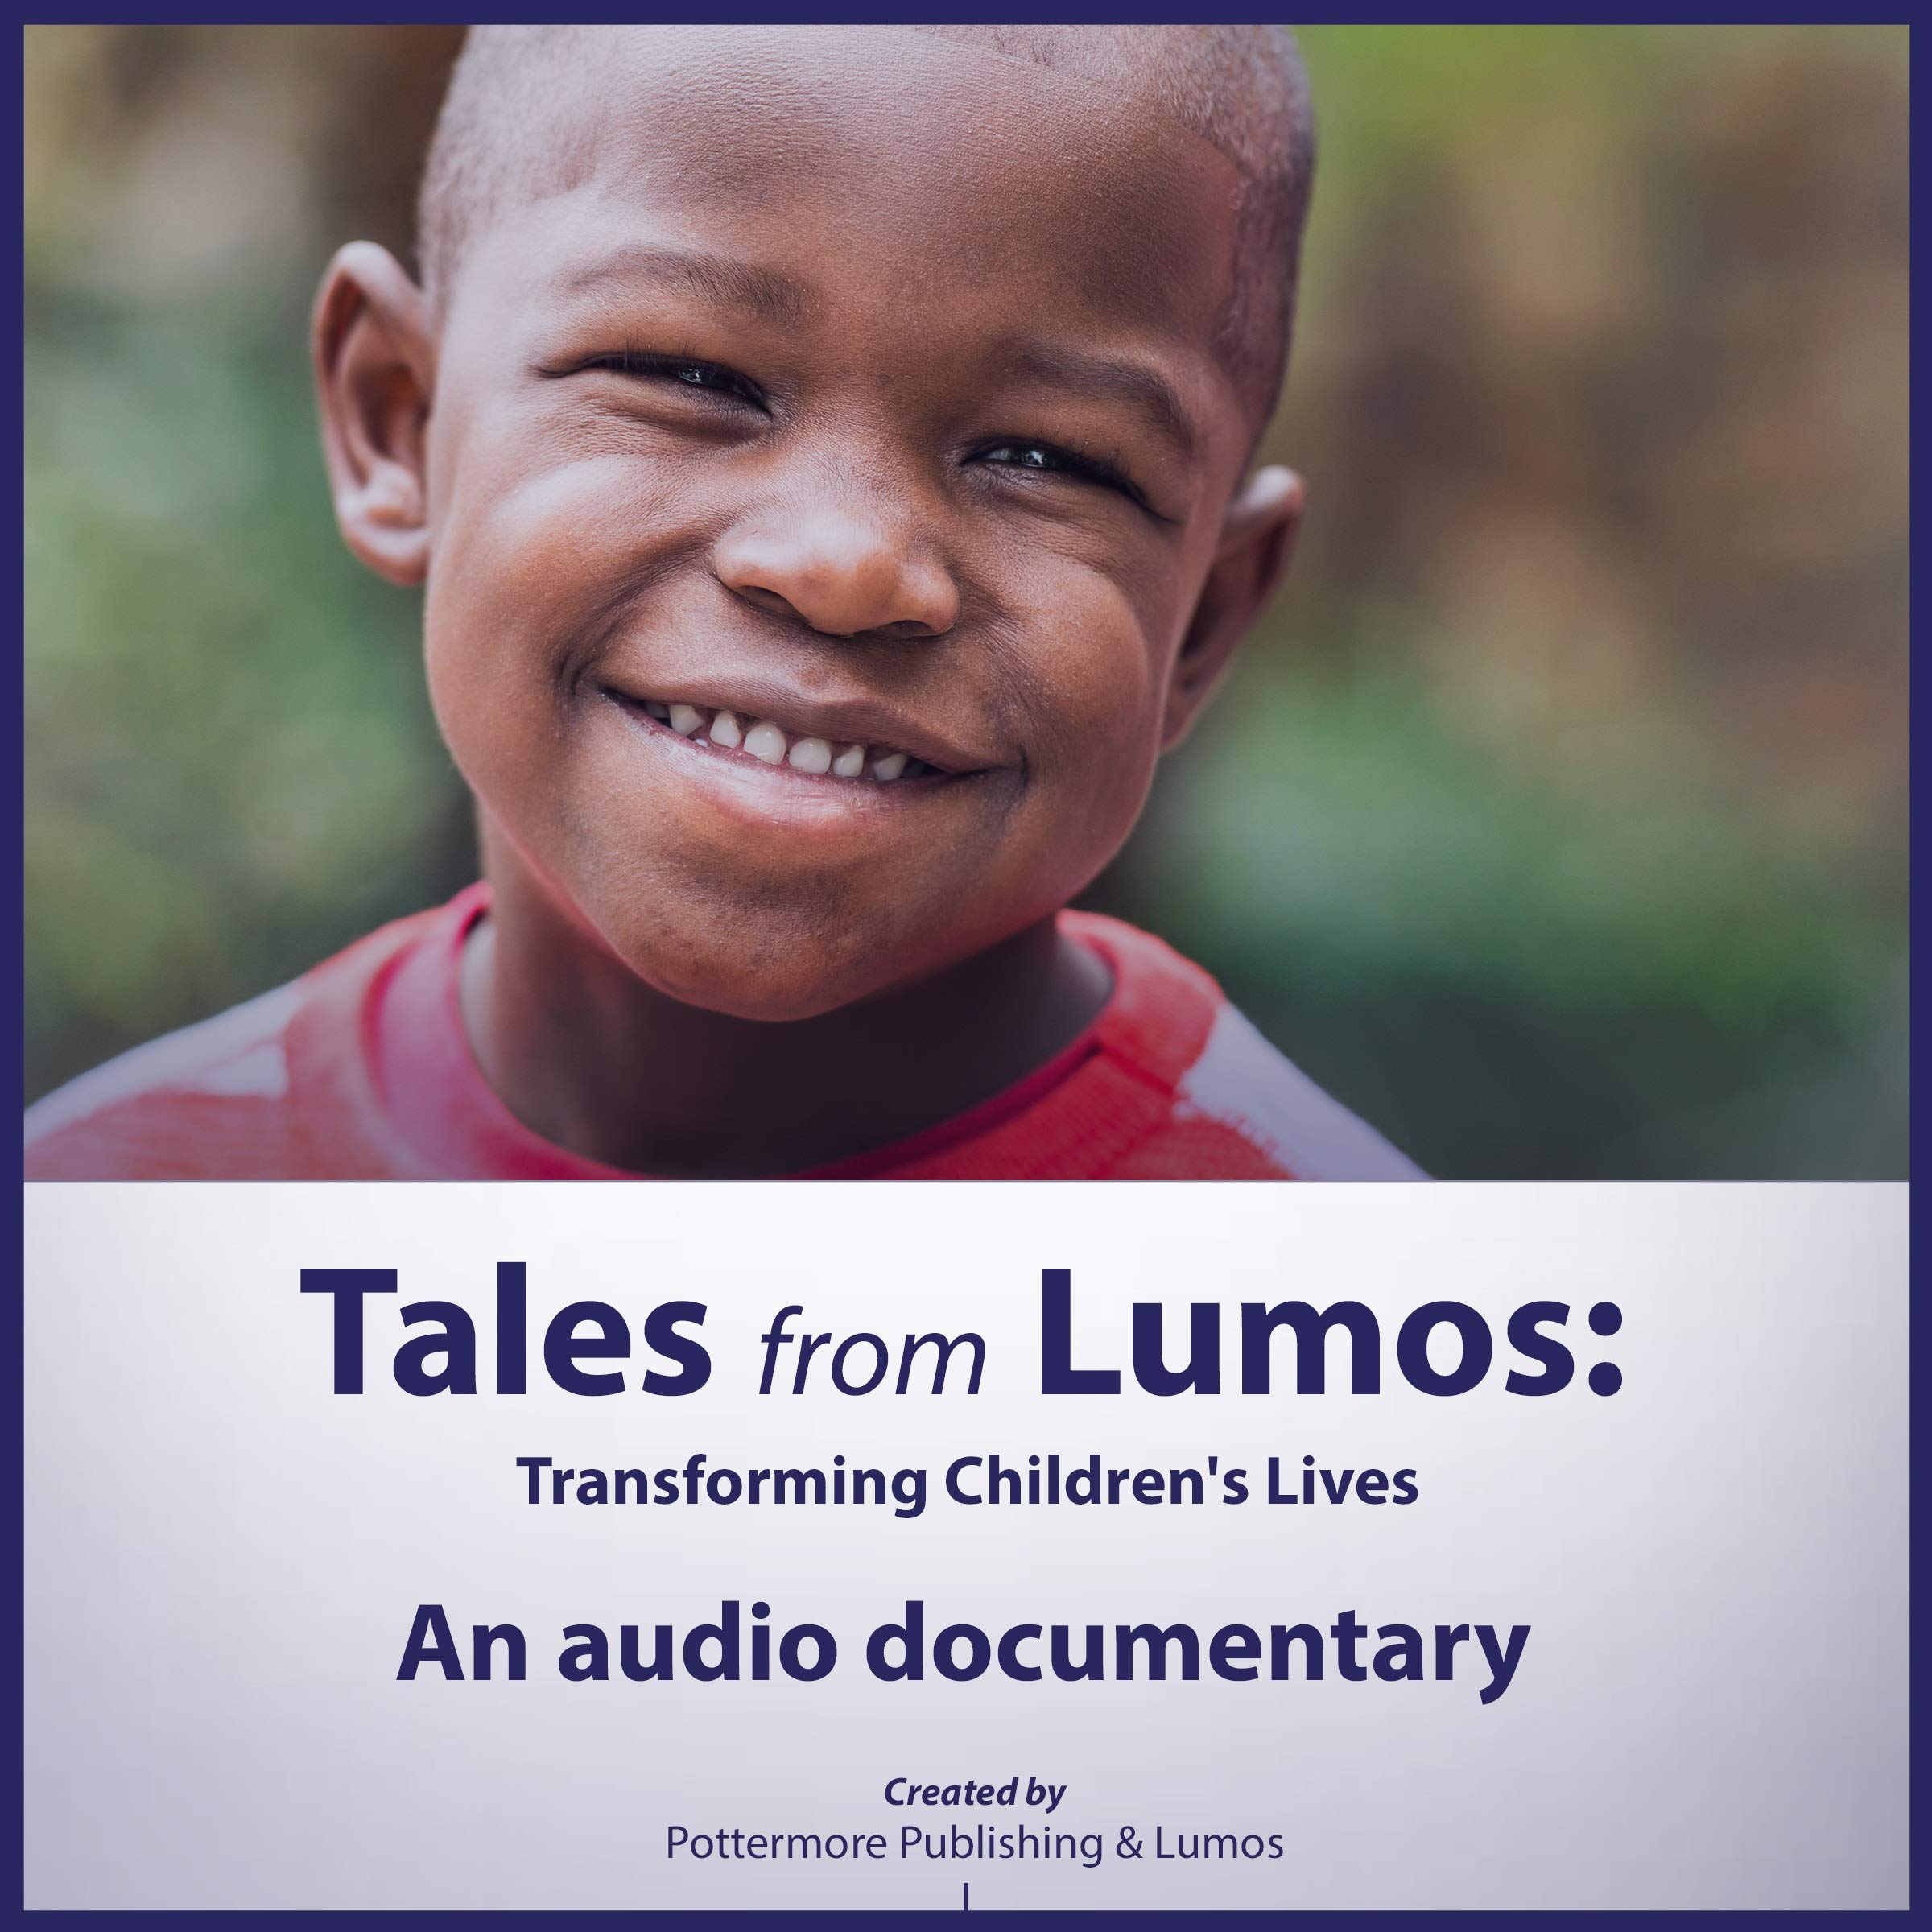 Tales from Lumos: Transforming Children's Lives